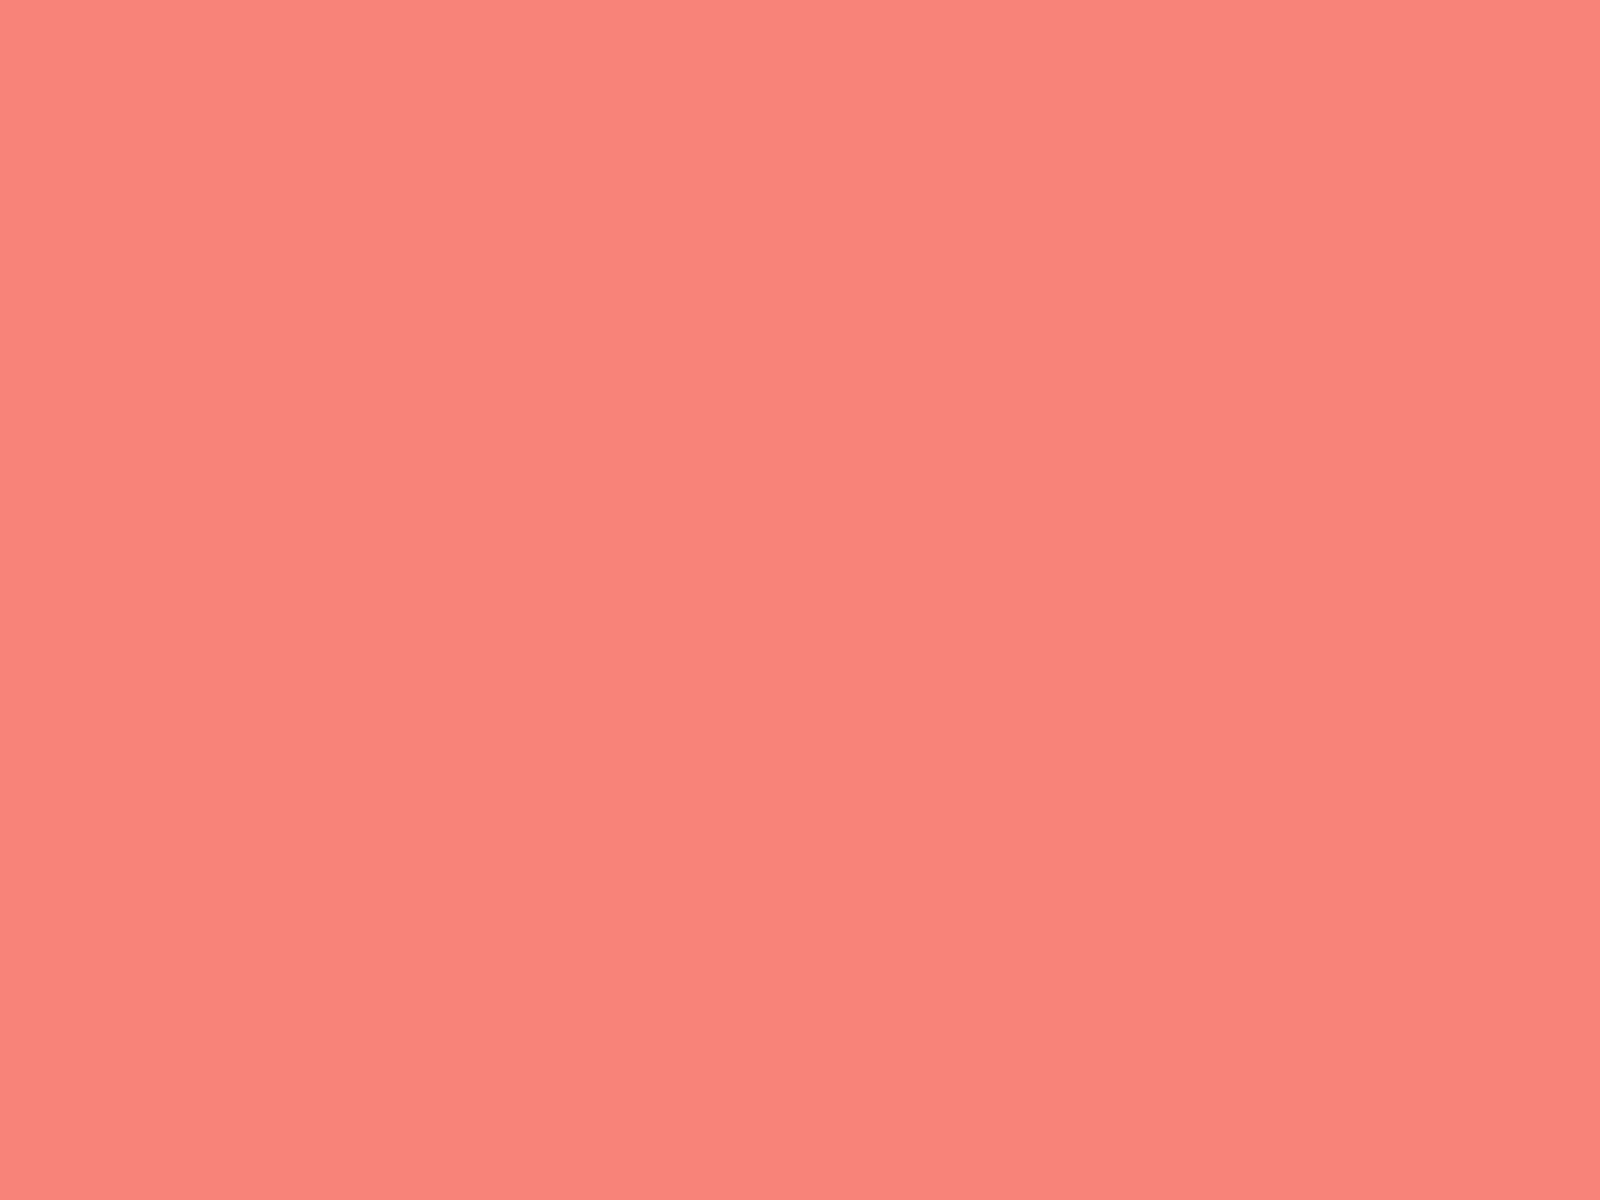 1600x1200 Coral Pink Solid Color Background